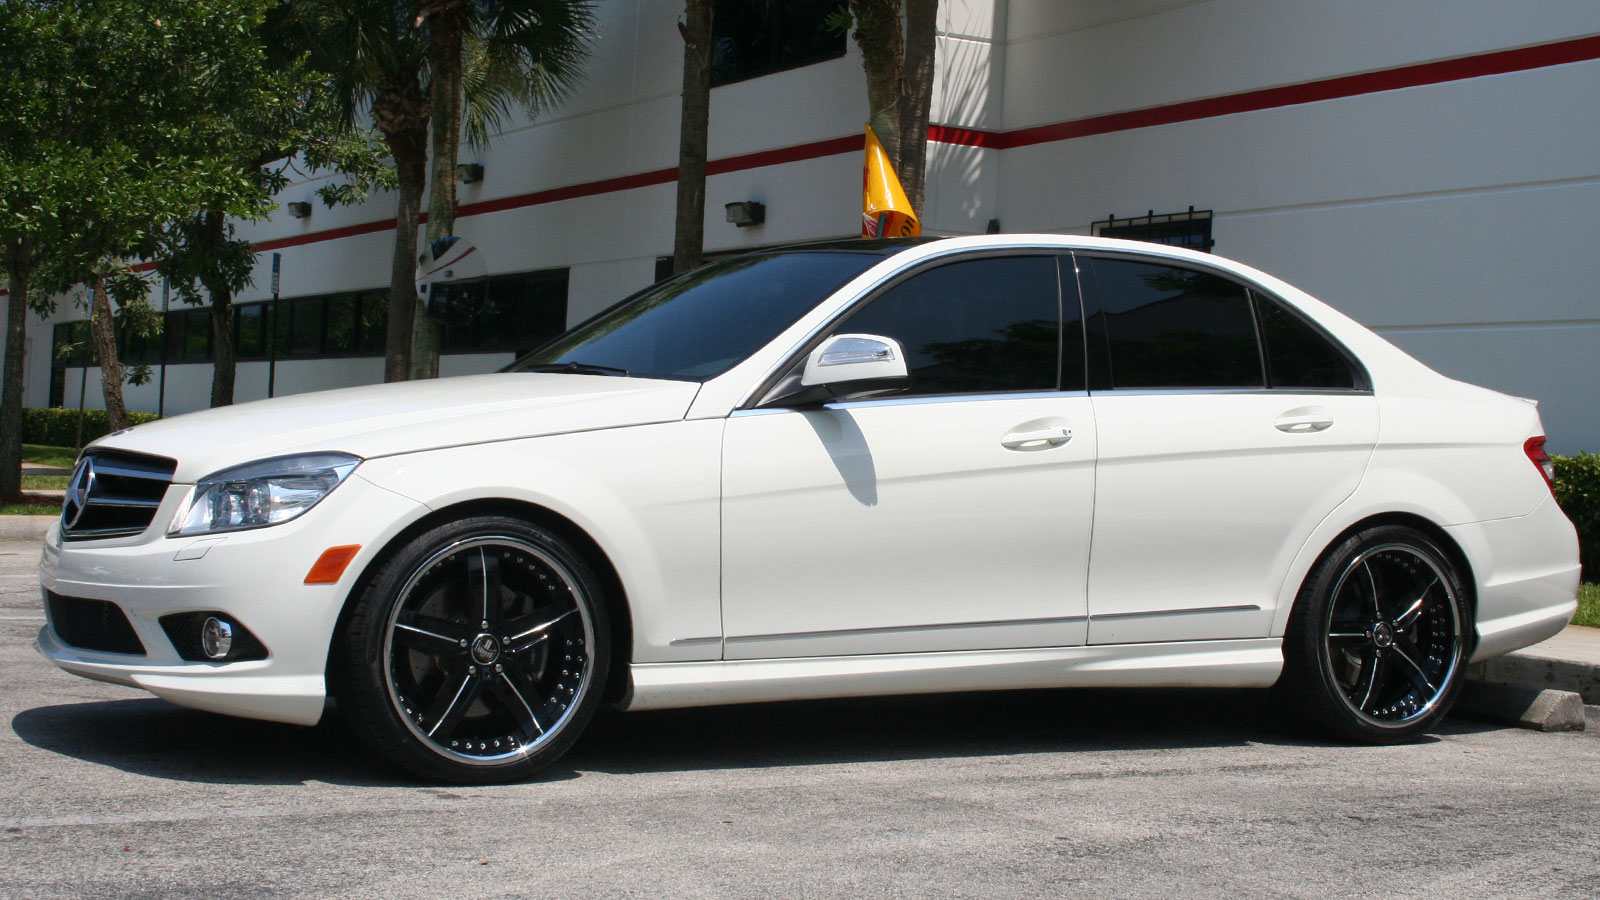 Mercedes benz c350 mantra gallery mht wheels inc for 2009 mercedes benz c350